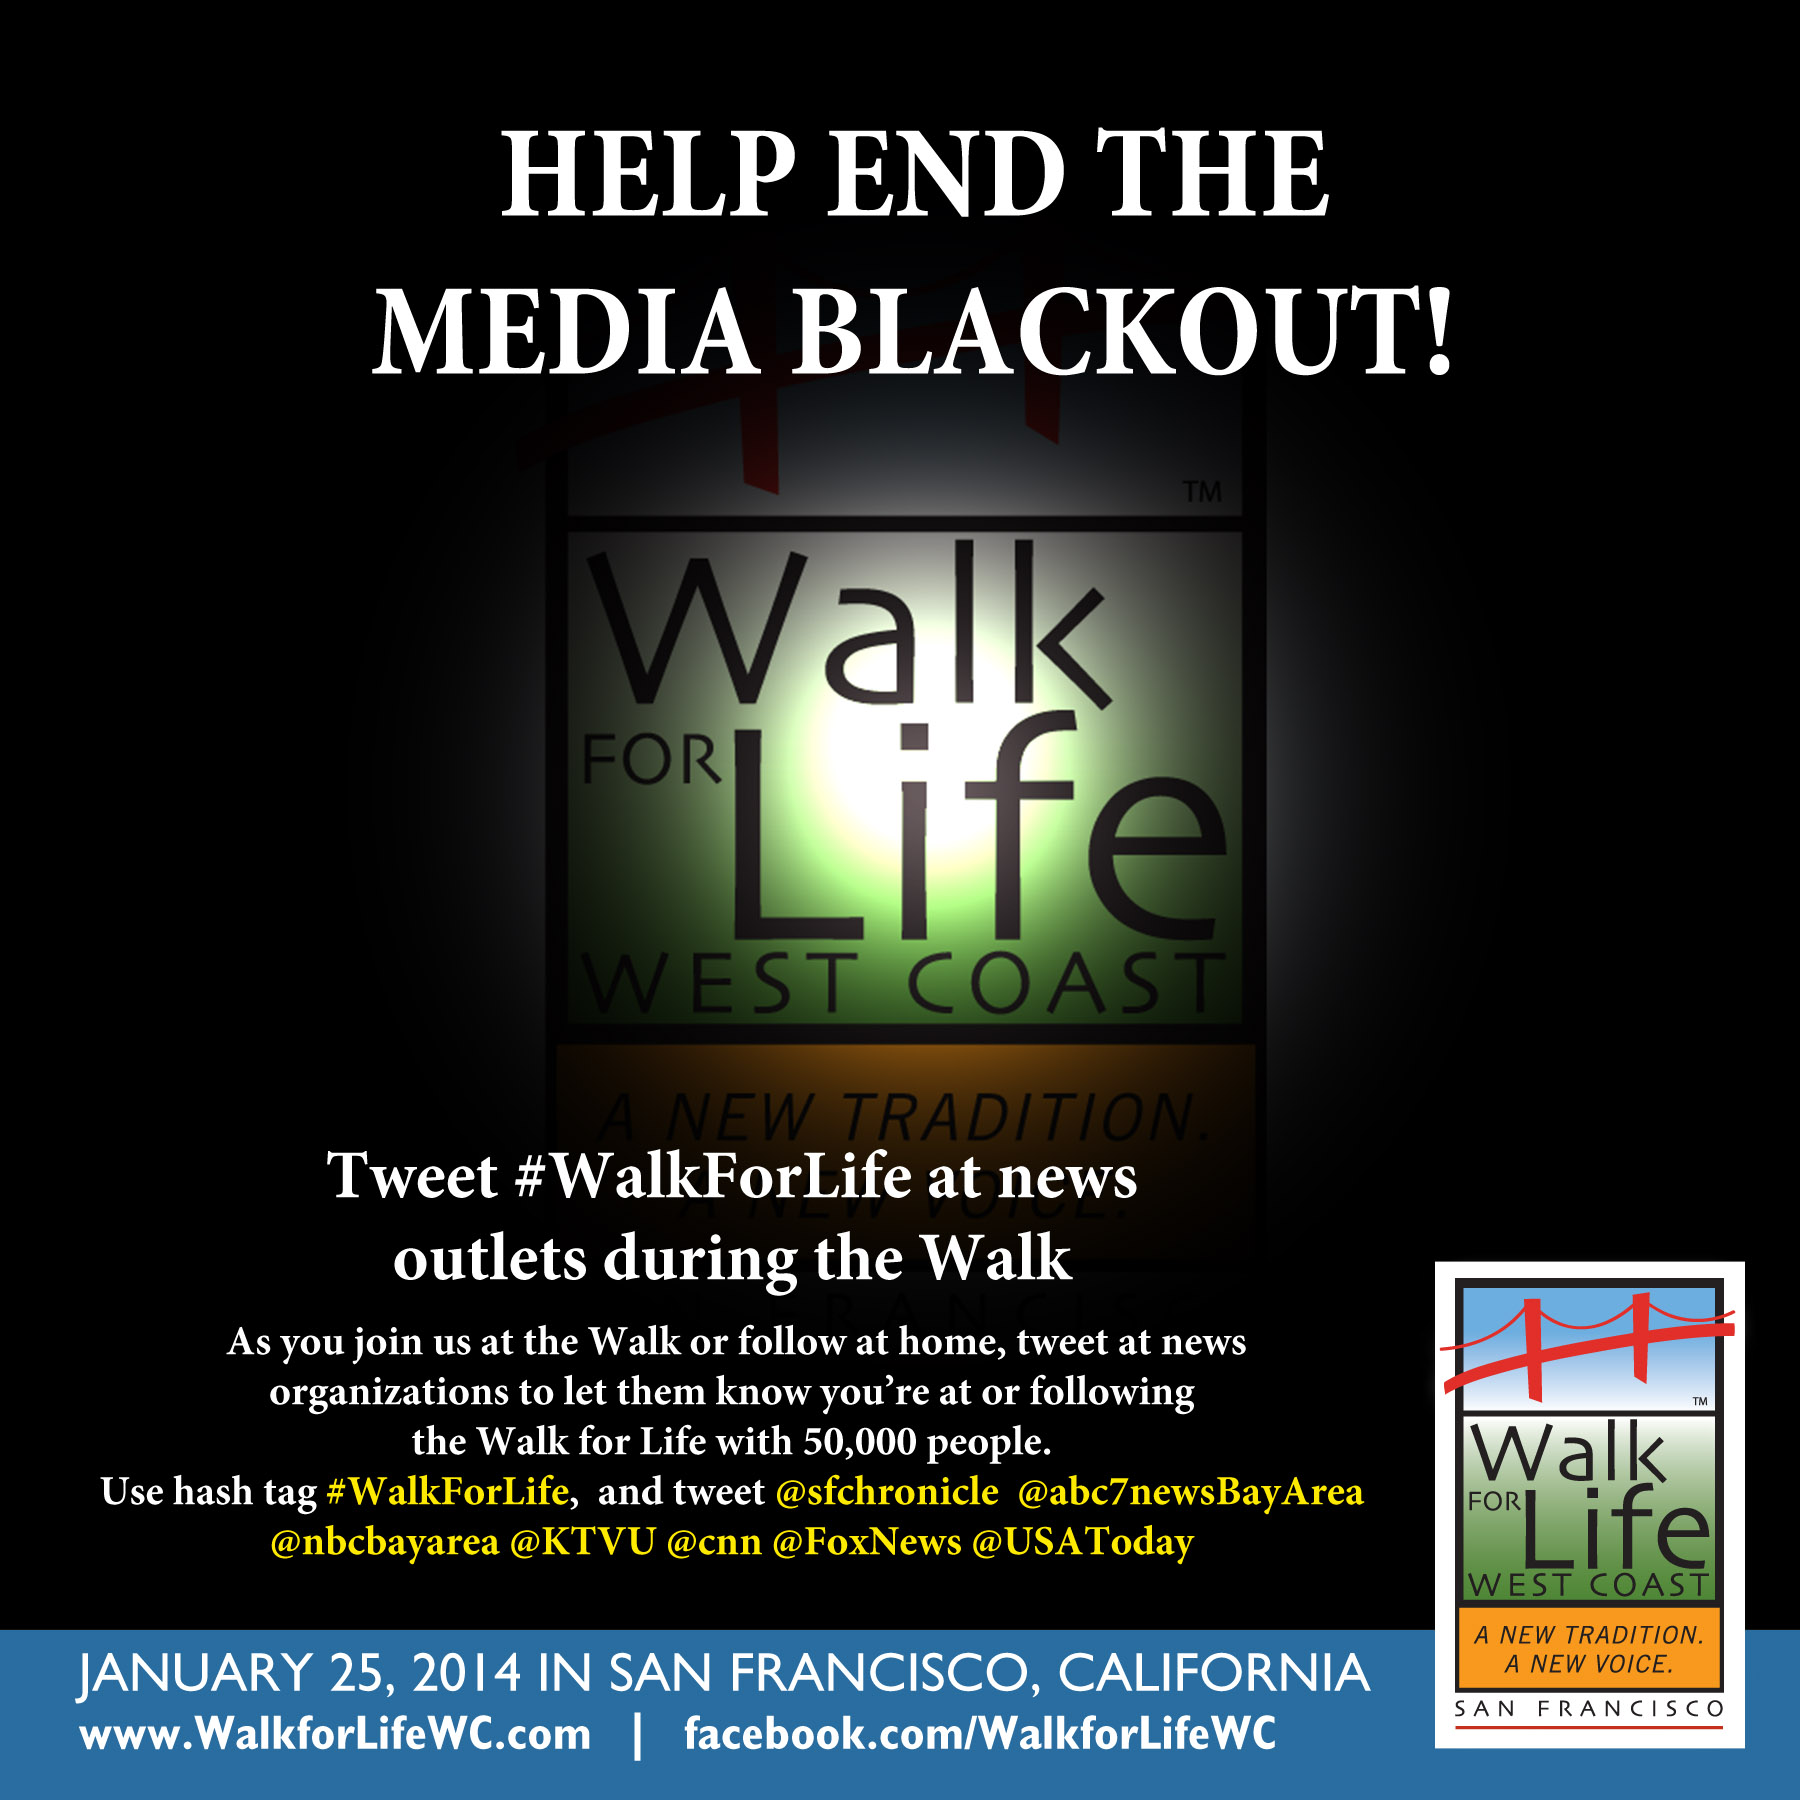 Goodbye, Media Blackout. Hello, #WalkforLife